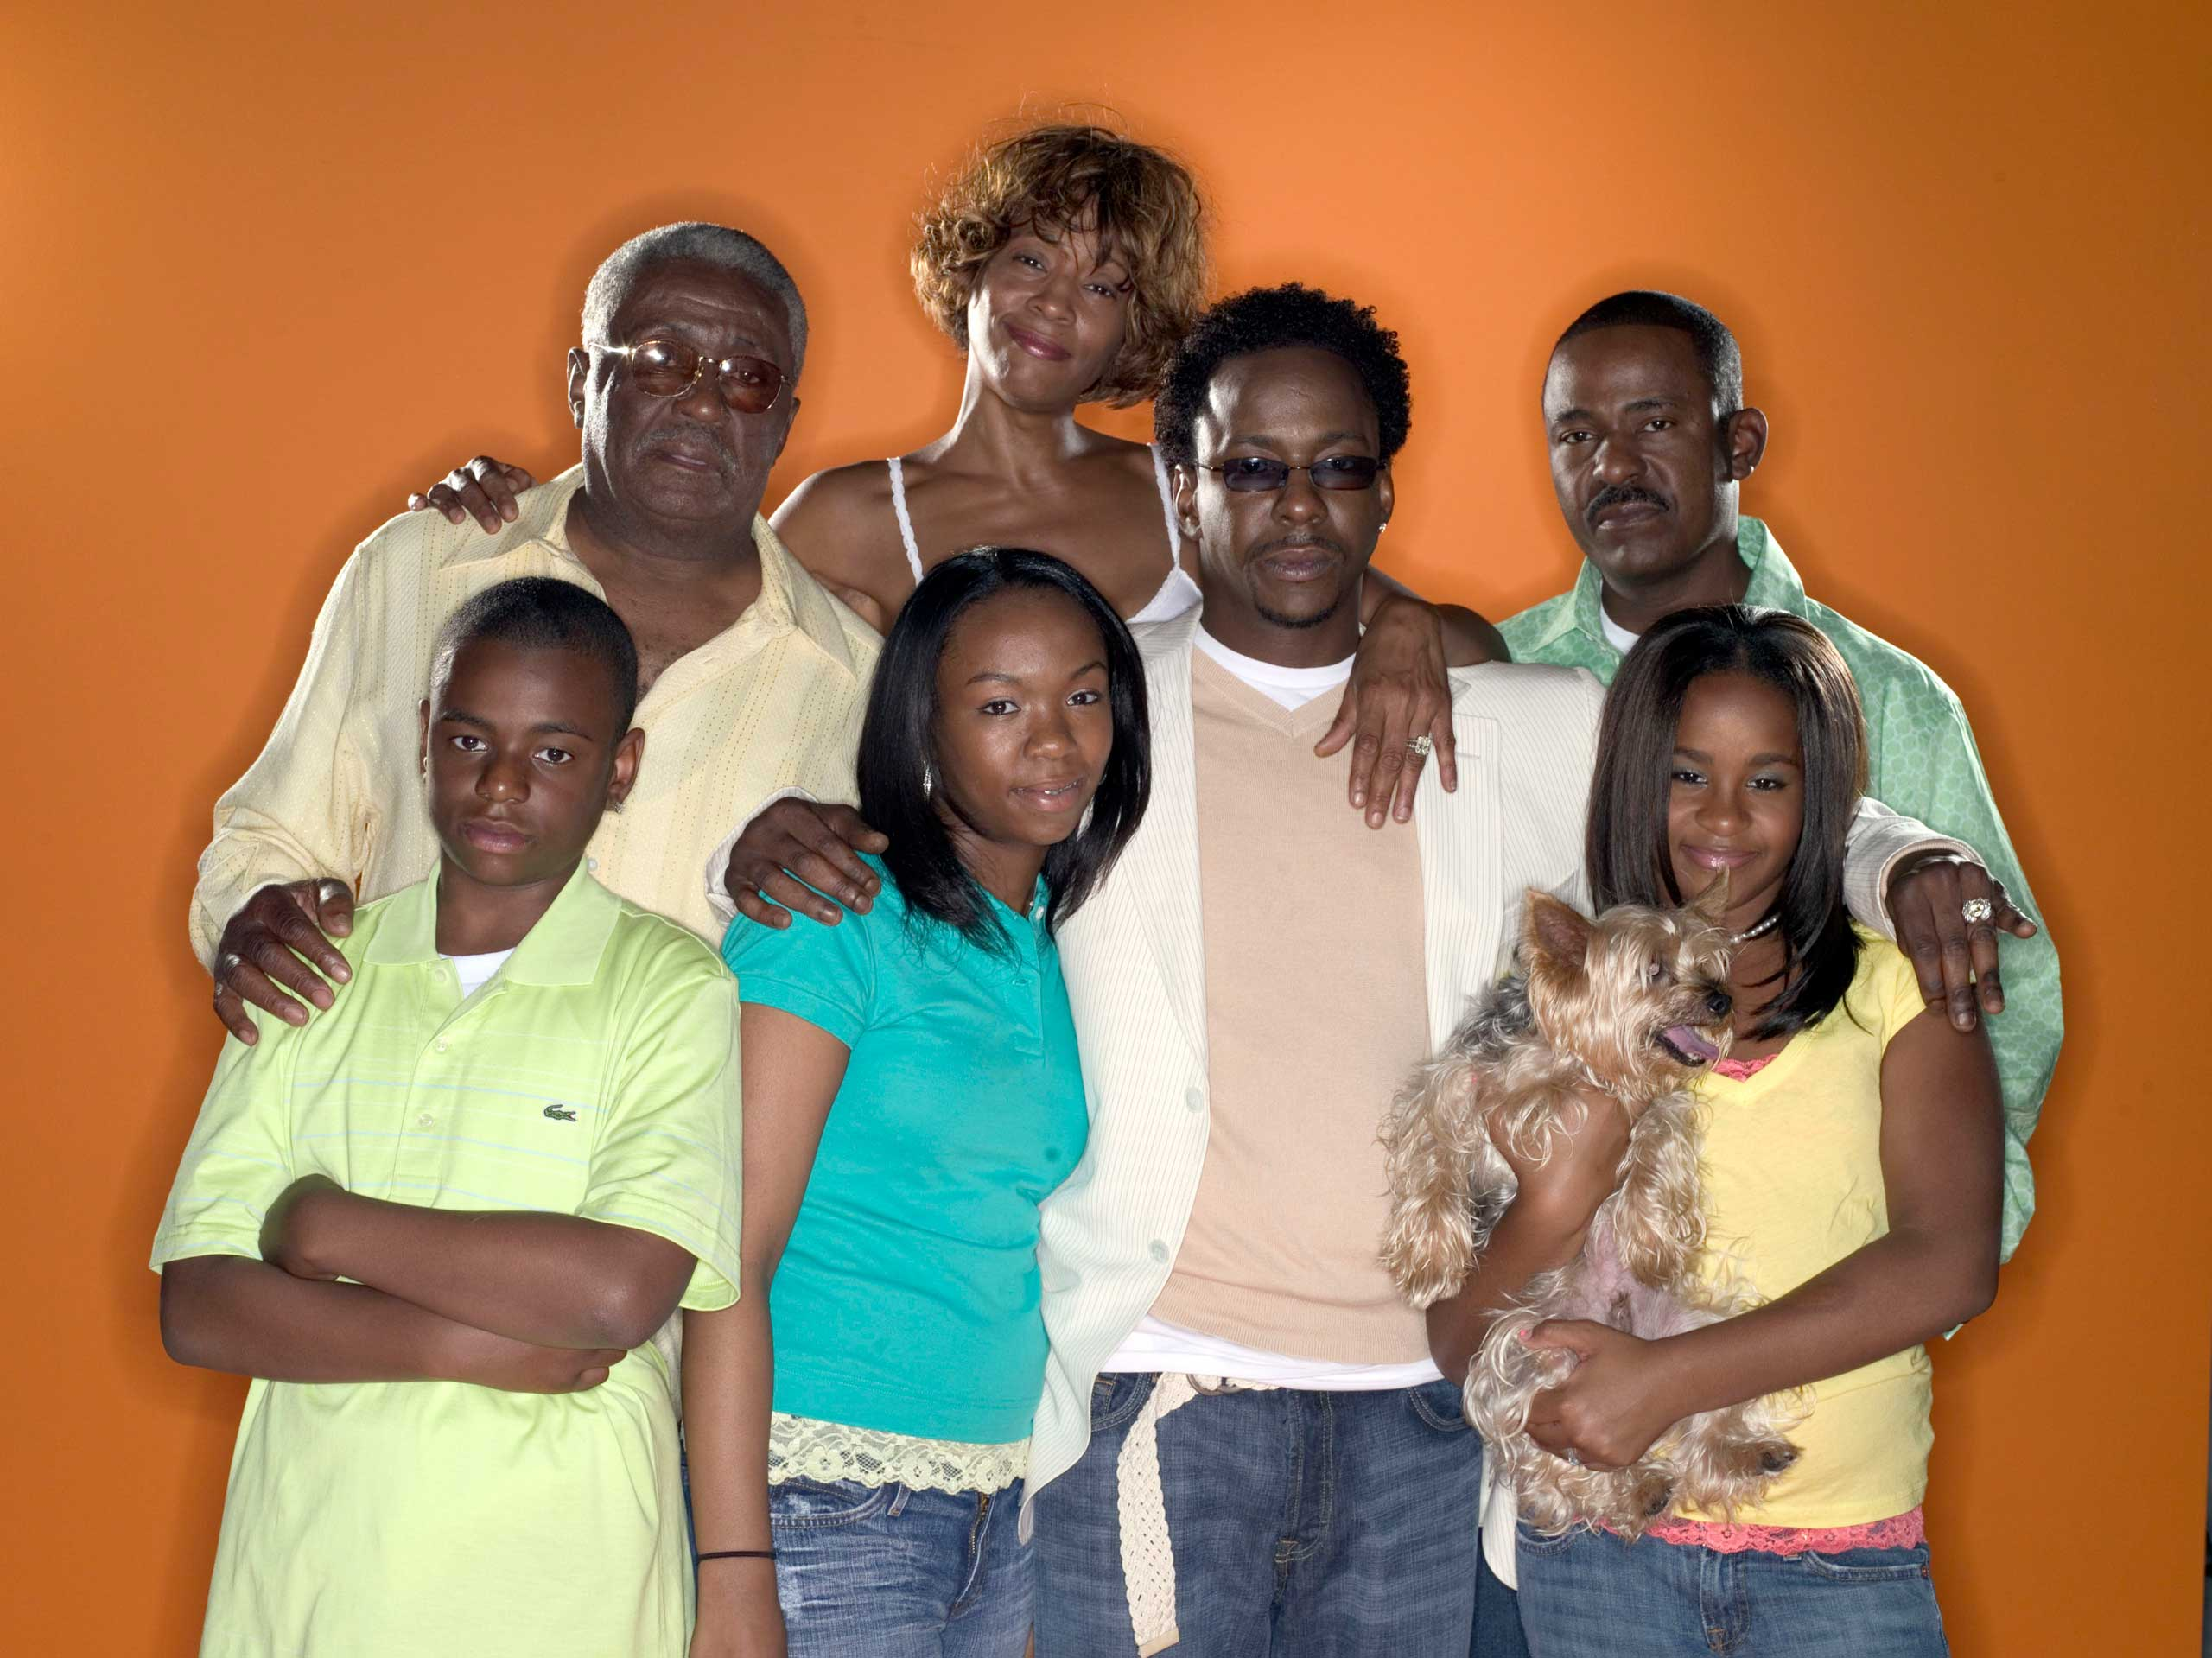 The Brown family poses for a portrait for their reality television show 'Being Bobby Brown.' Left to Right: Pops Brown, Whitney Houston, Tommy Brown, Bobby Brown Jr., La'princia Brown, Bobby Brown, Bobbi Kristina Brown.